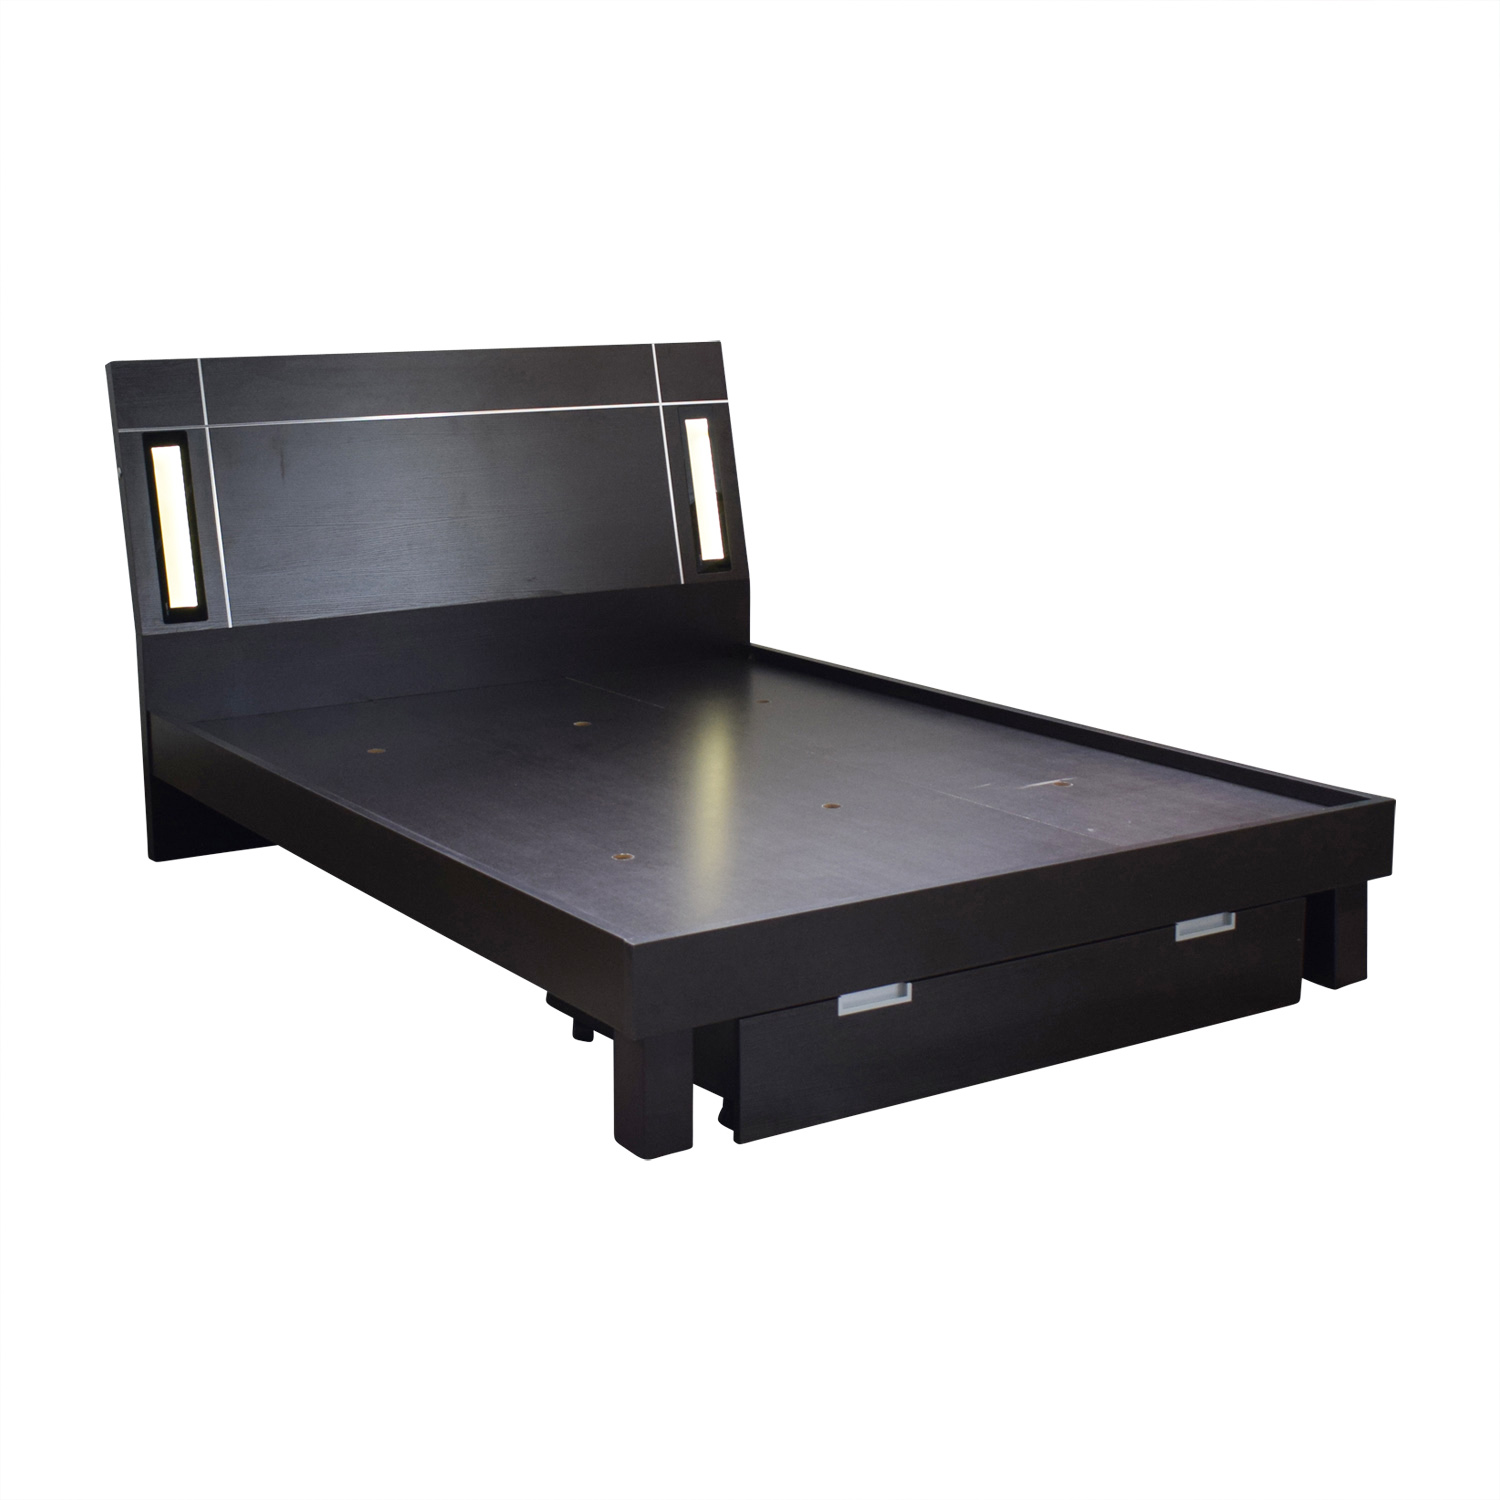 56 Off Platform Queen Bed Frame With Lighting And